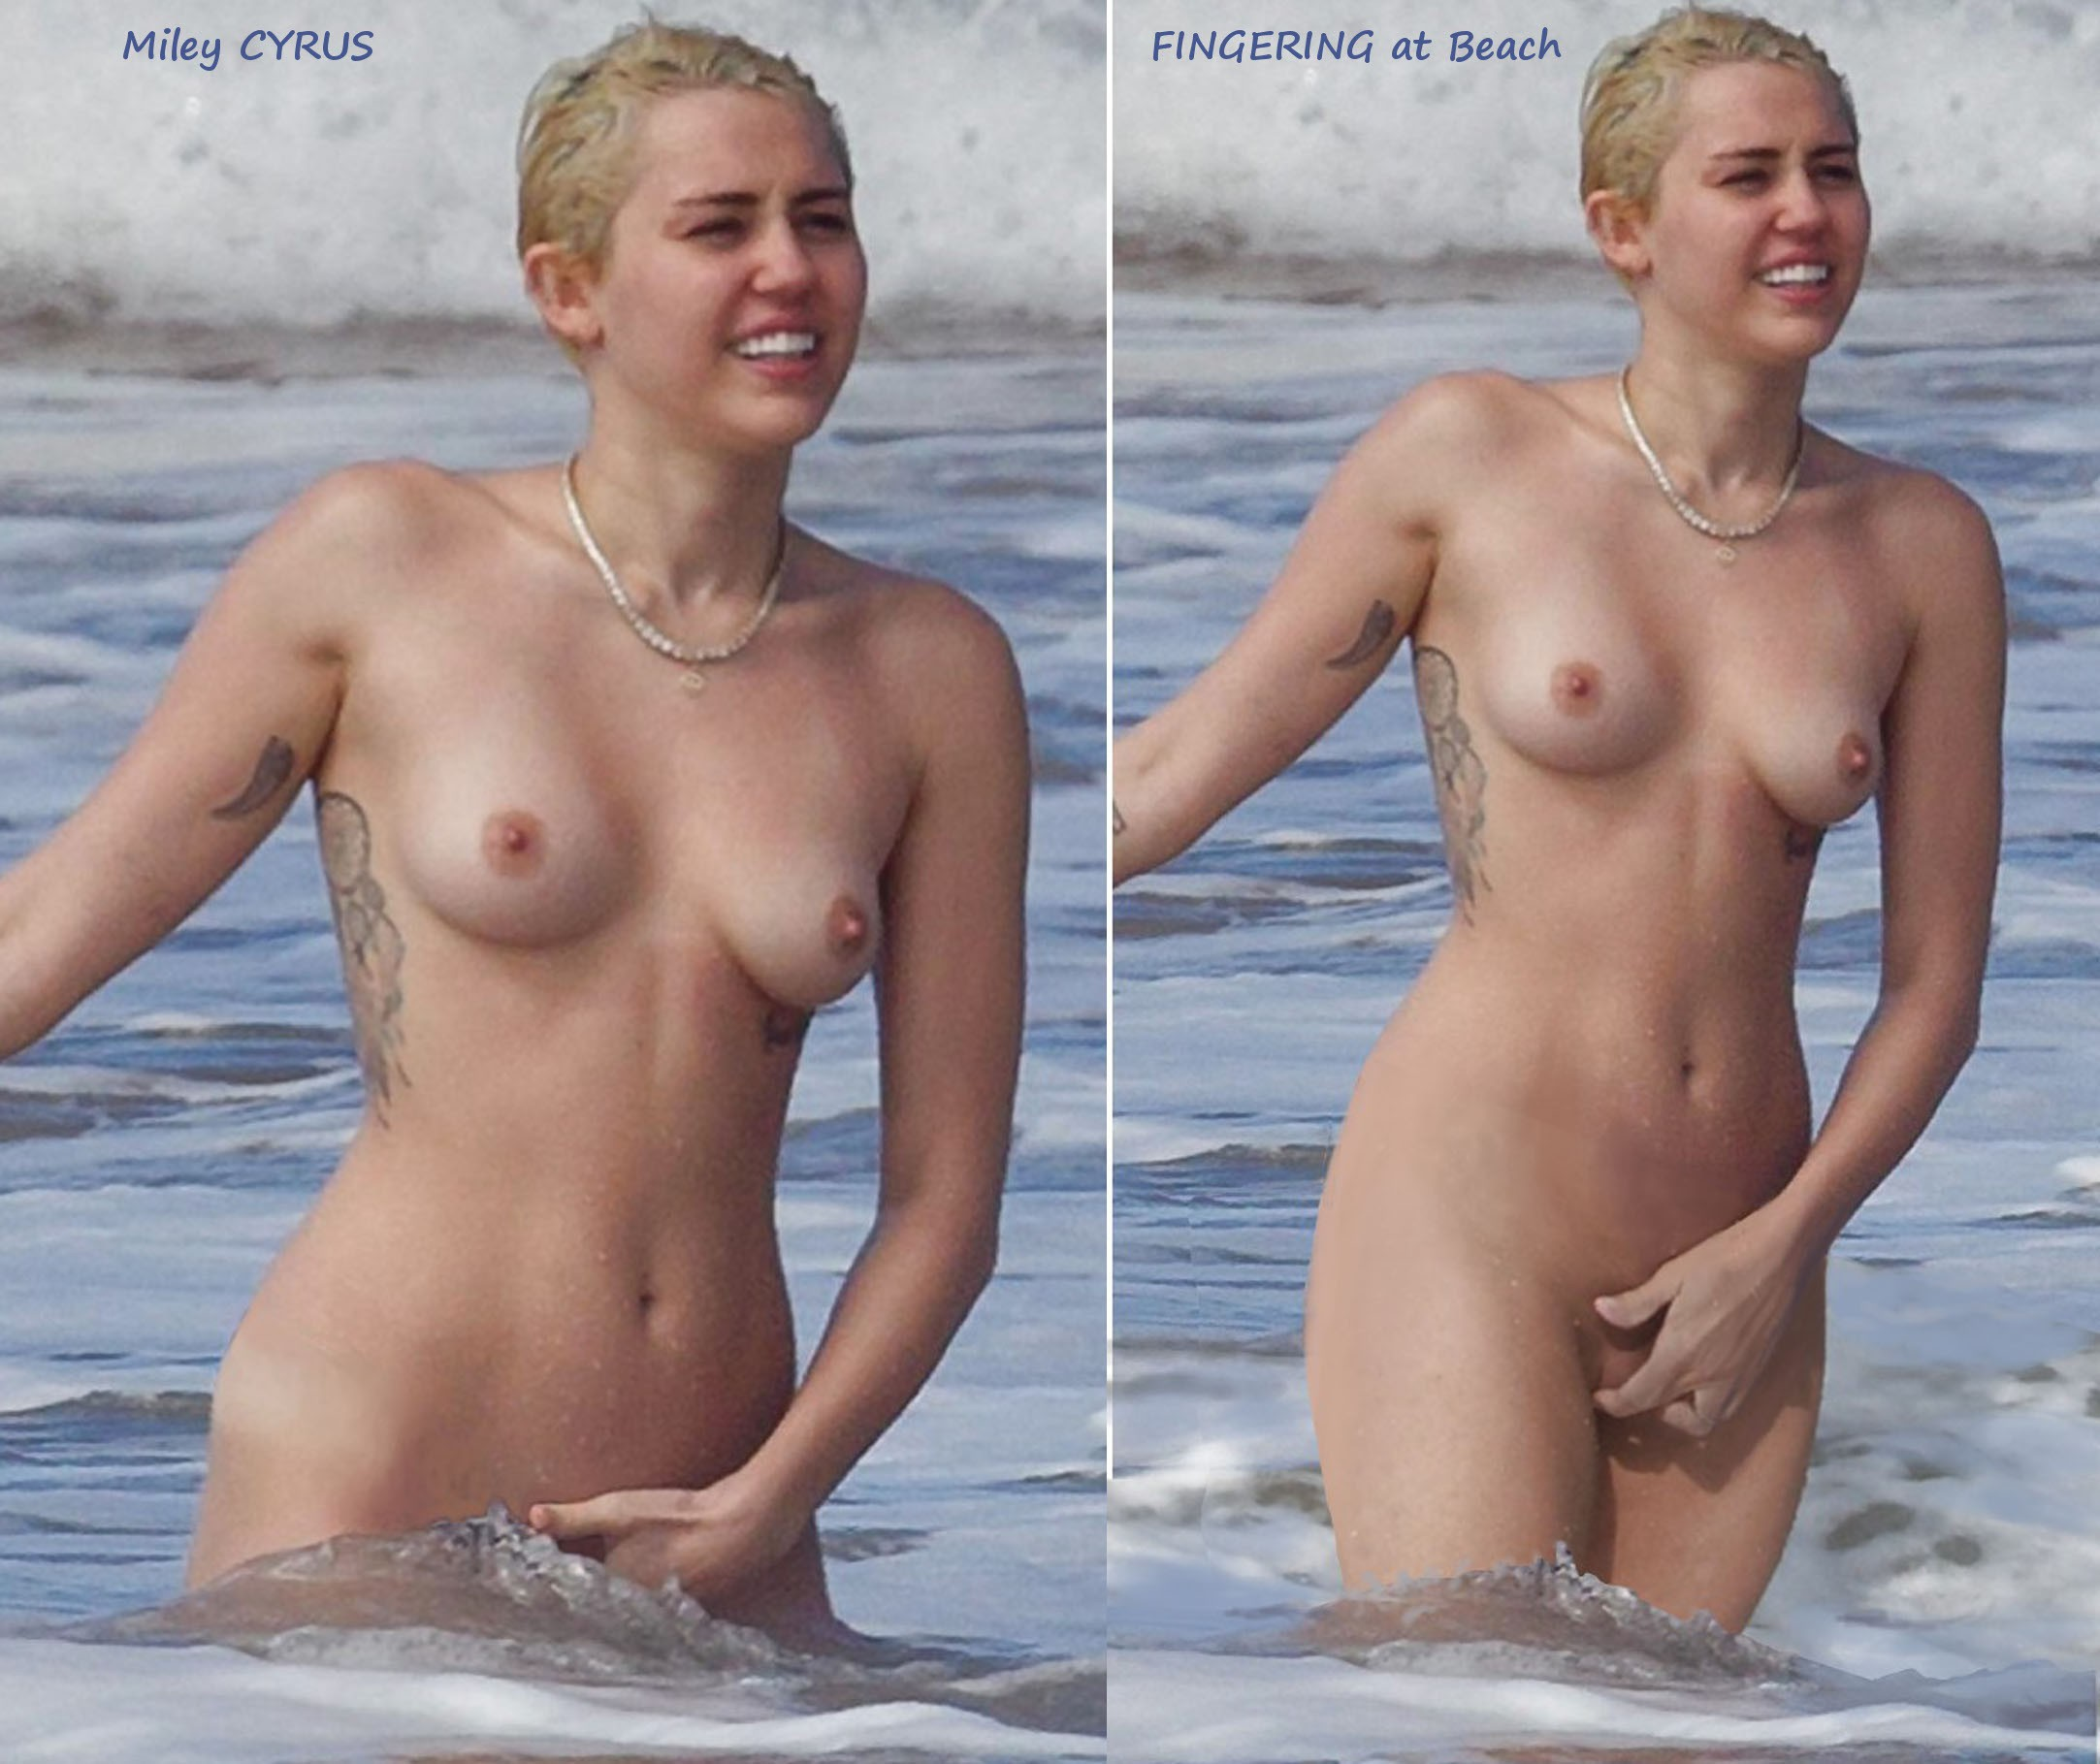 Miley cyrus kissing a girl naked — photo 2